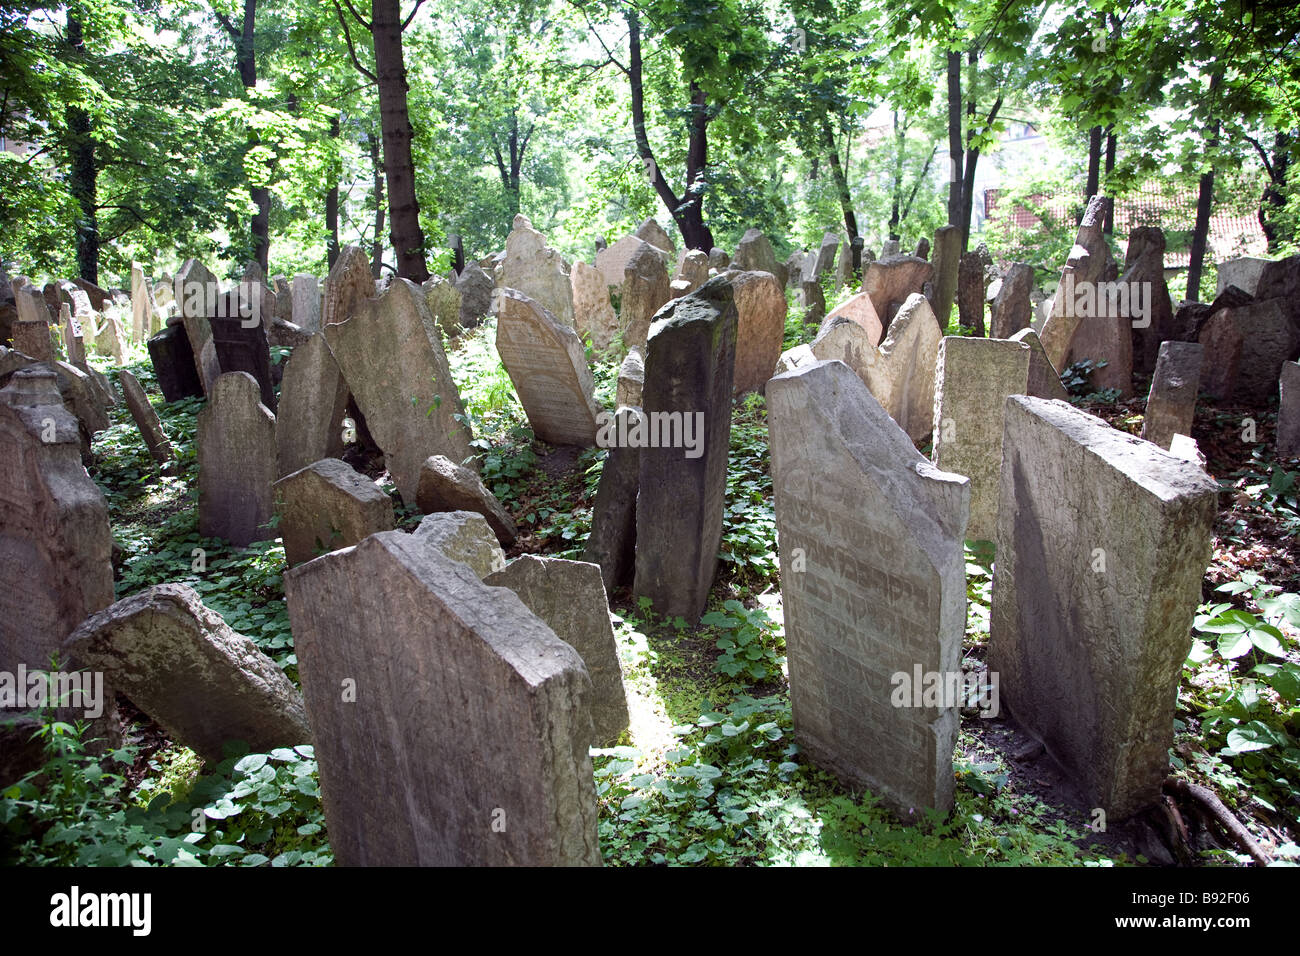 The Old Jewish Cemetery in Prague Czech Republic - Stock Image